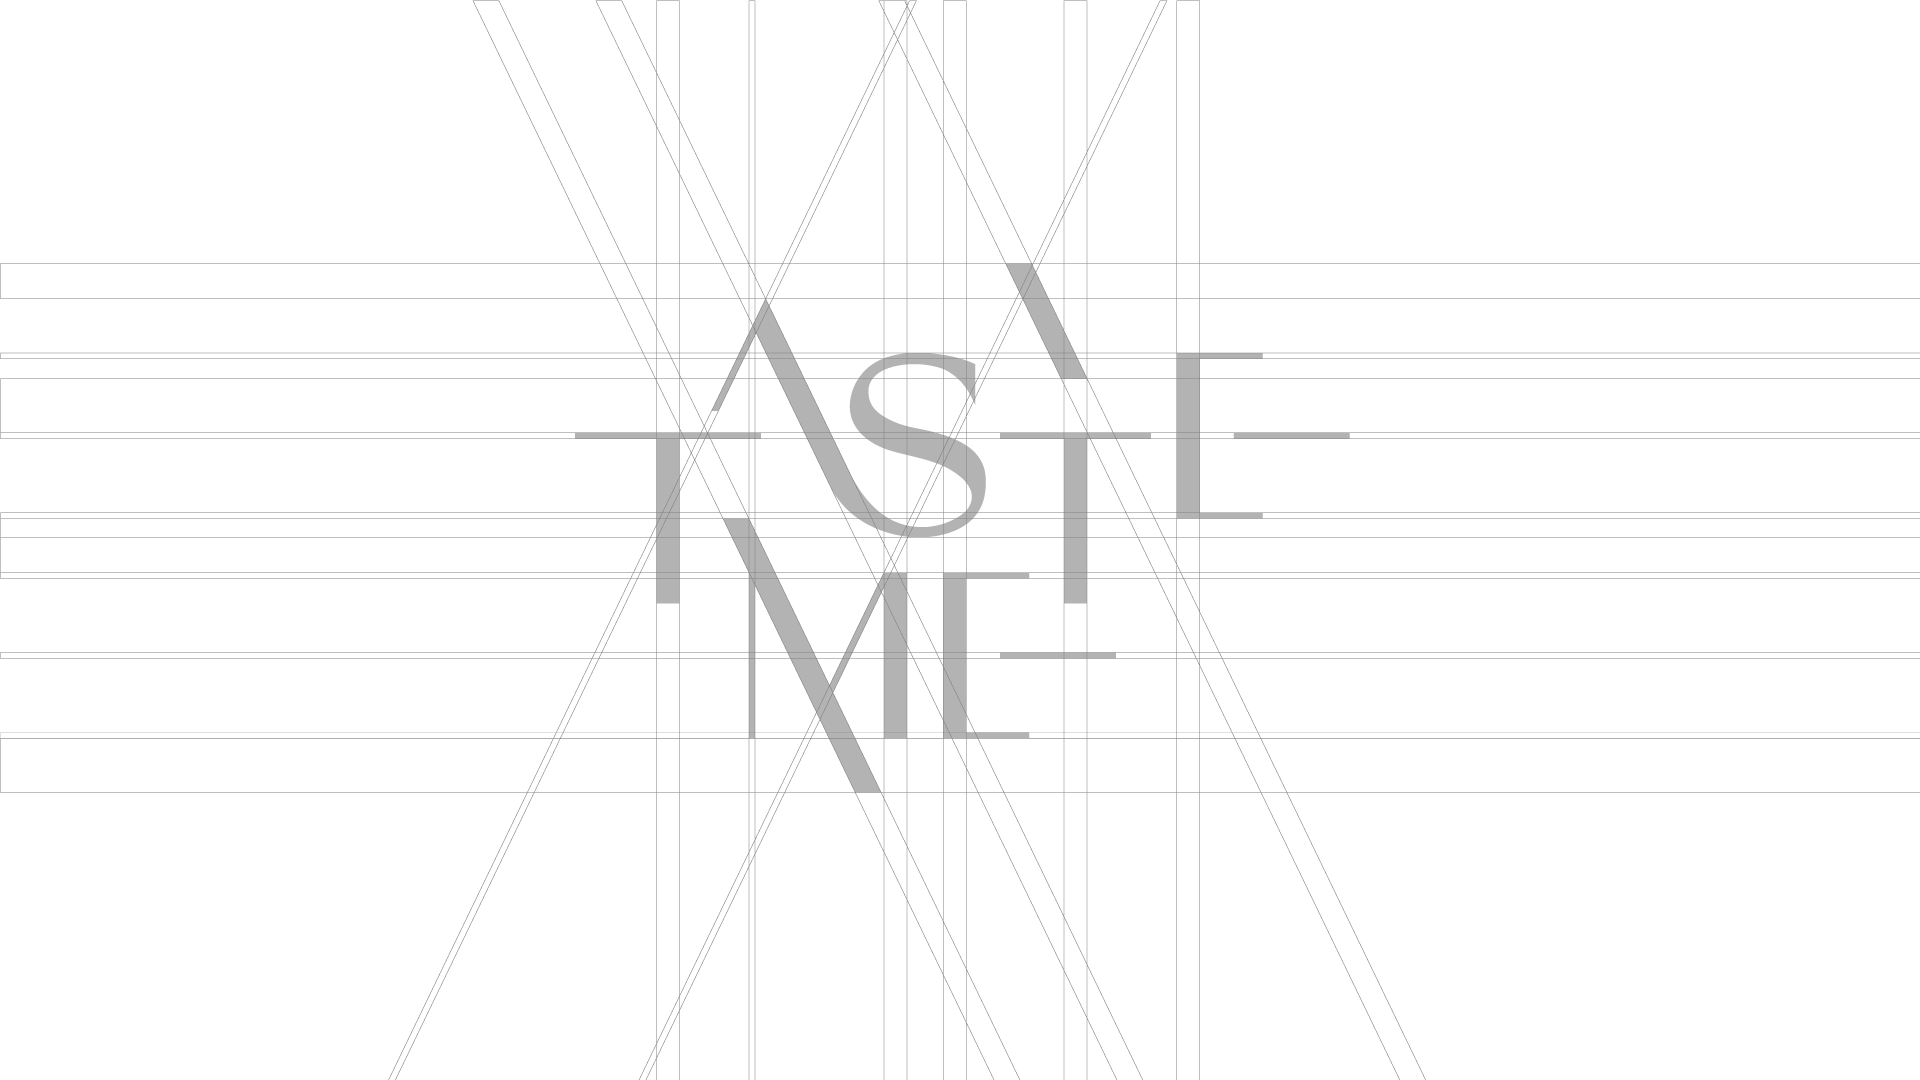 Tasteme-LogoStructure-Work-by-YaStudio